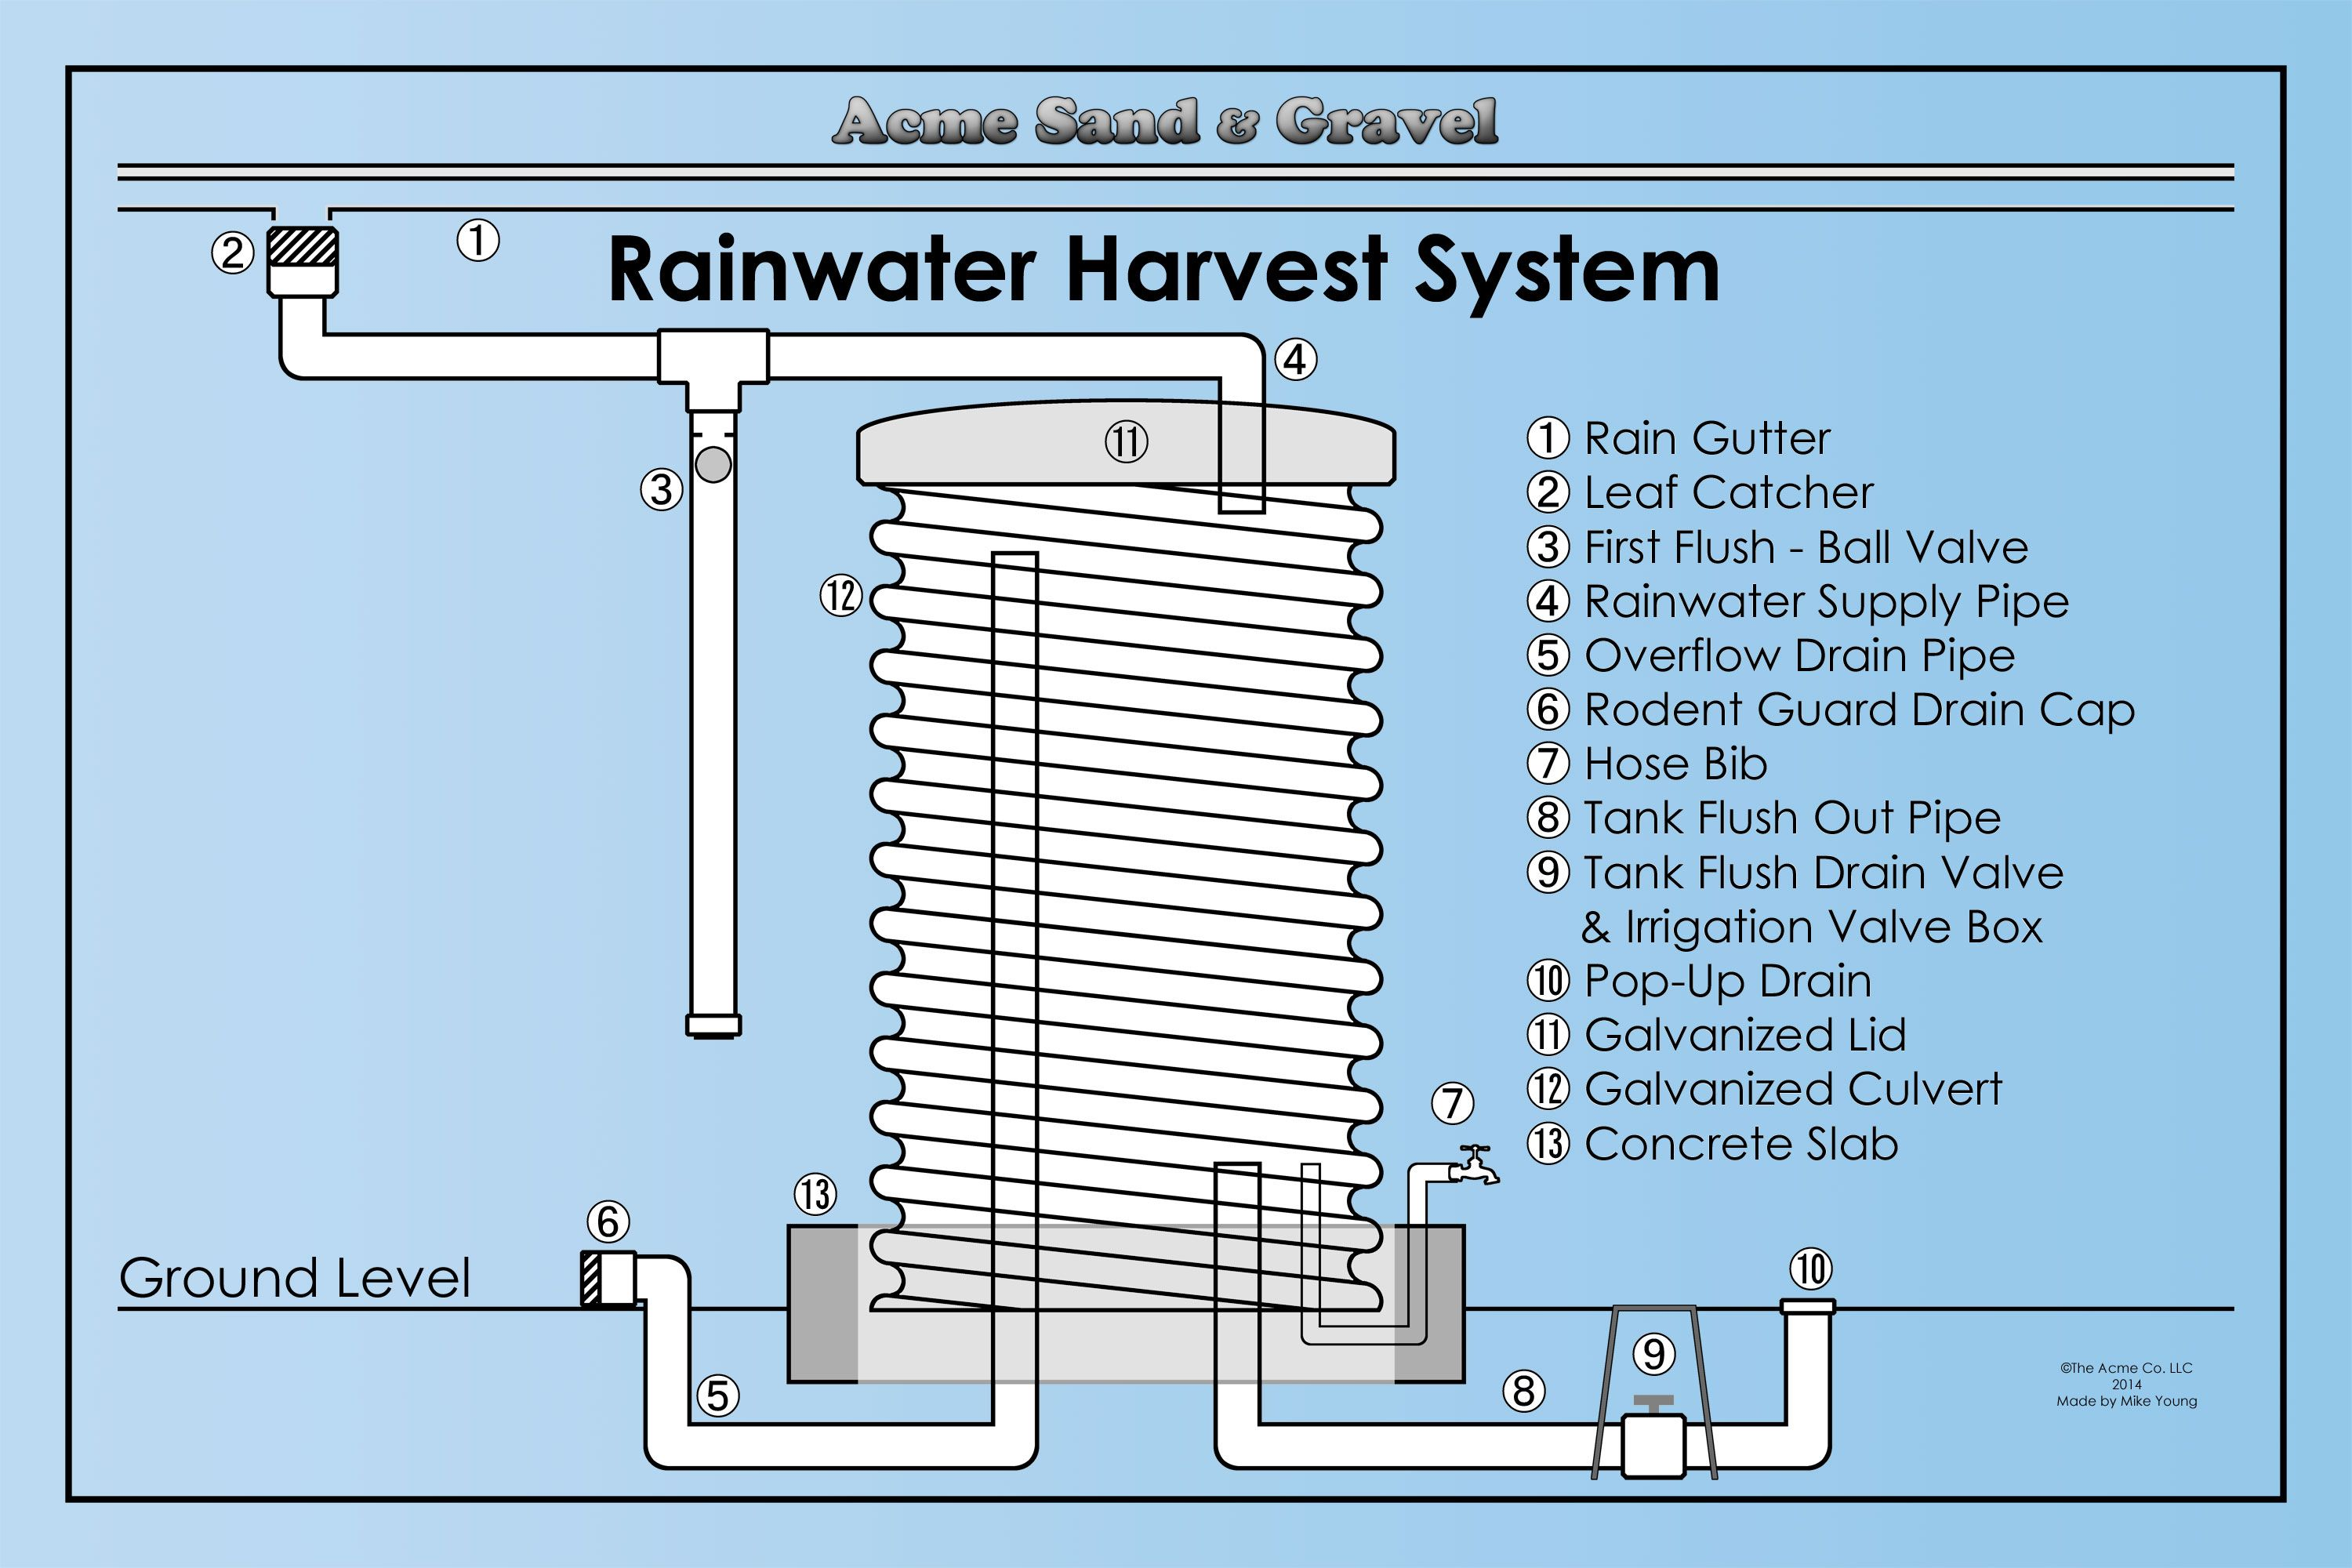 Rainwater-Harvesting System-Diagram | Sustainable living in 2018 ...